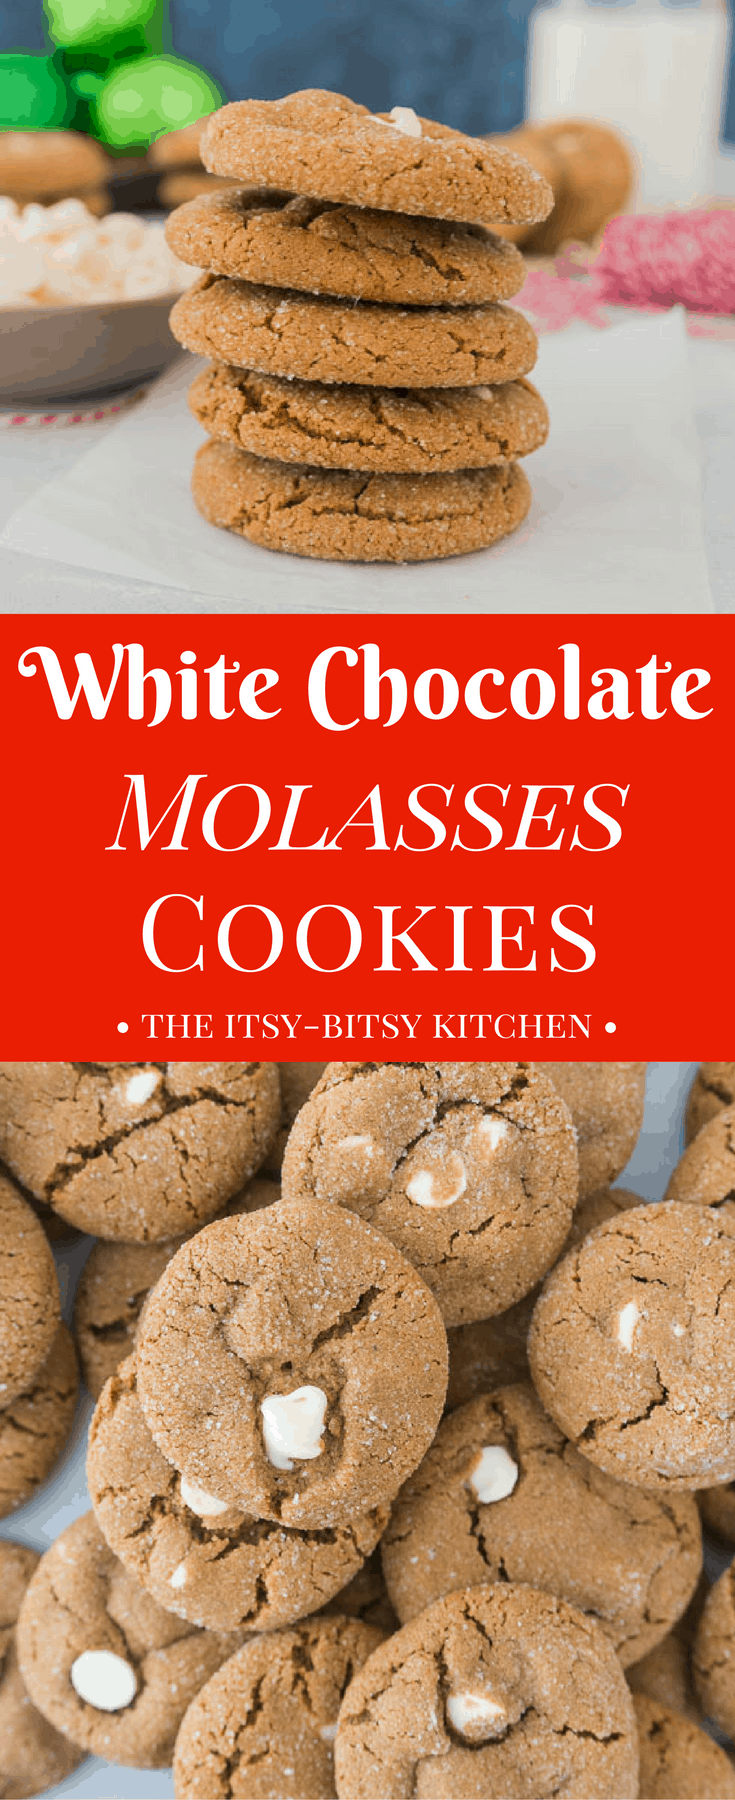 White chocolate molasses cookies are chewy, full of holiday spices, and they make a delicious addition to your Christmas cookie trays. This recipe is a keeper! #molassescookies #cookies #Christmascookies